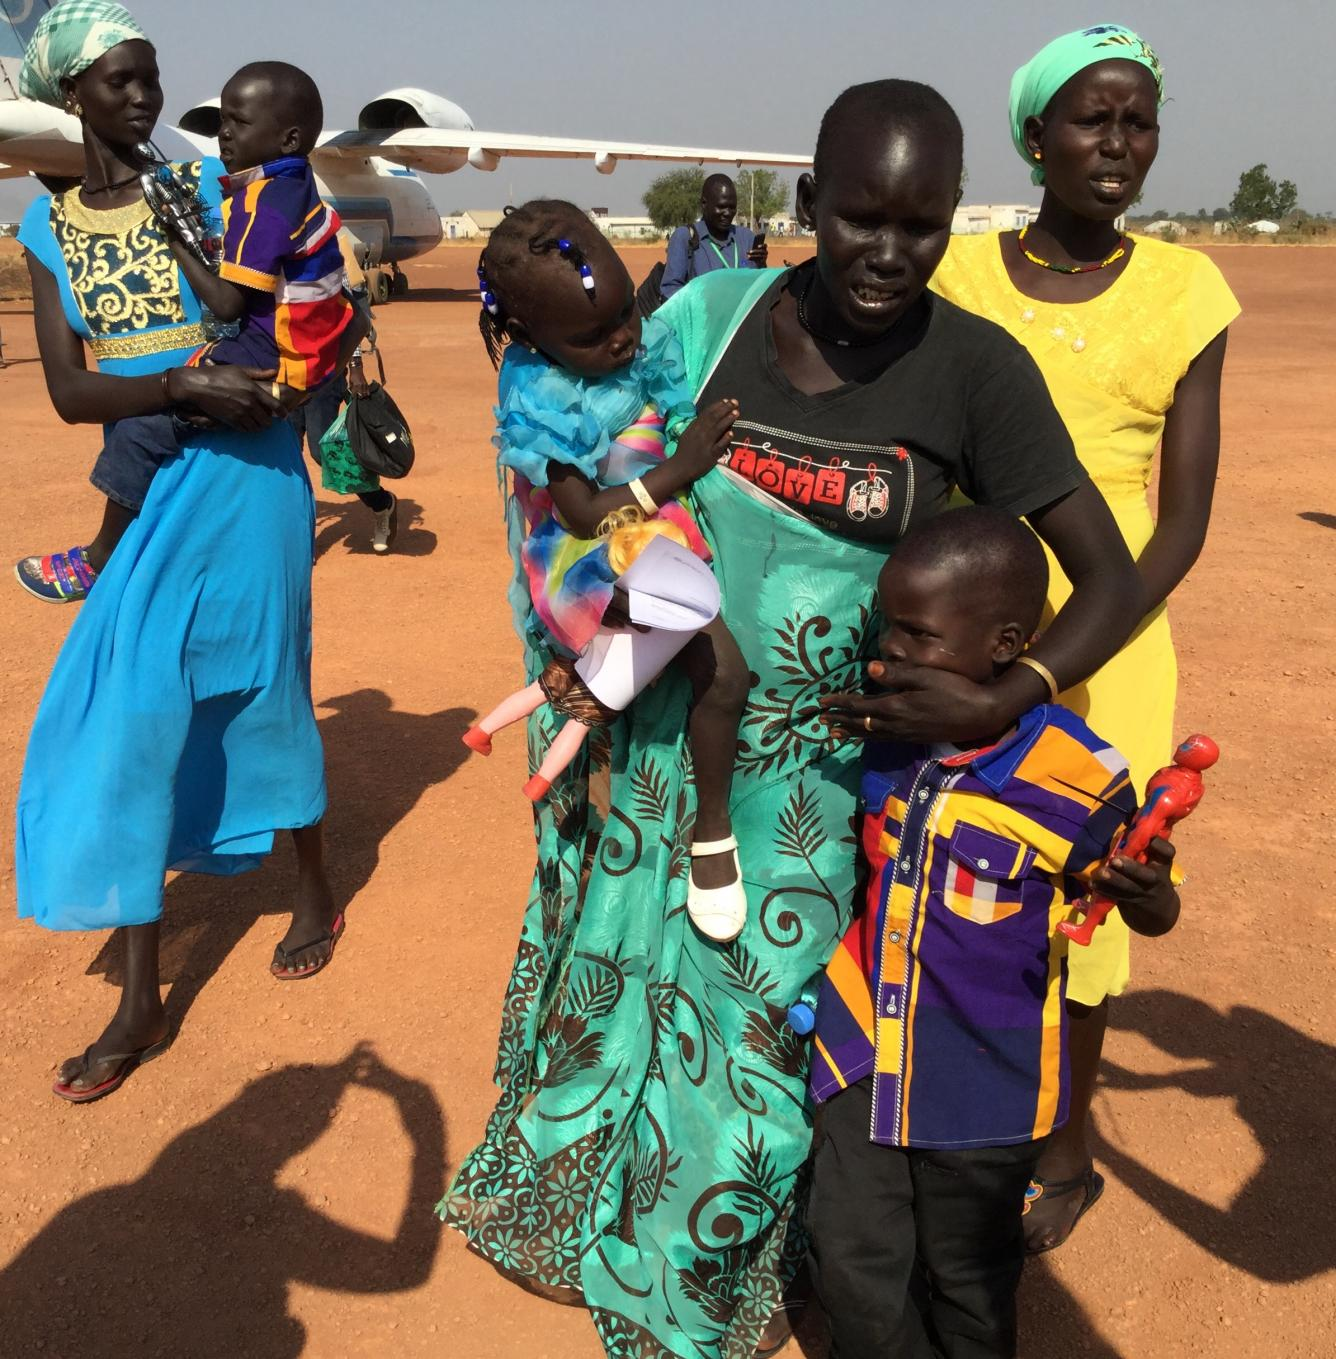 A mother (centre) is overcome with emotion after being reunited with her three children after a two-year separation. UNICEF facilitated the tracing and reunion at the Rubkona air strip in northern S. Sudan.